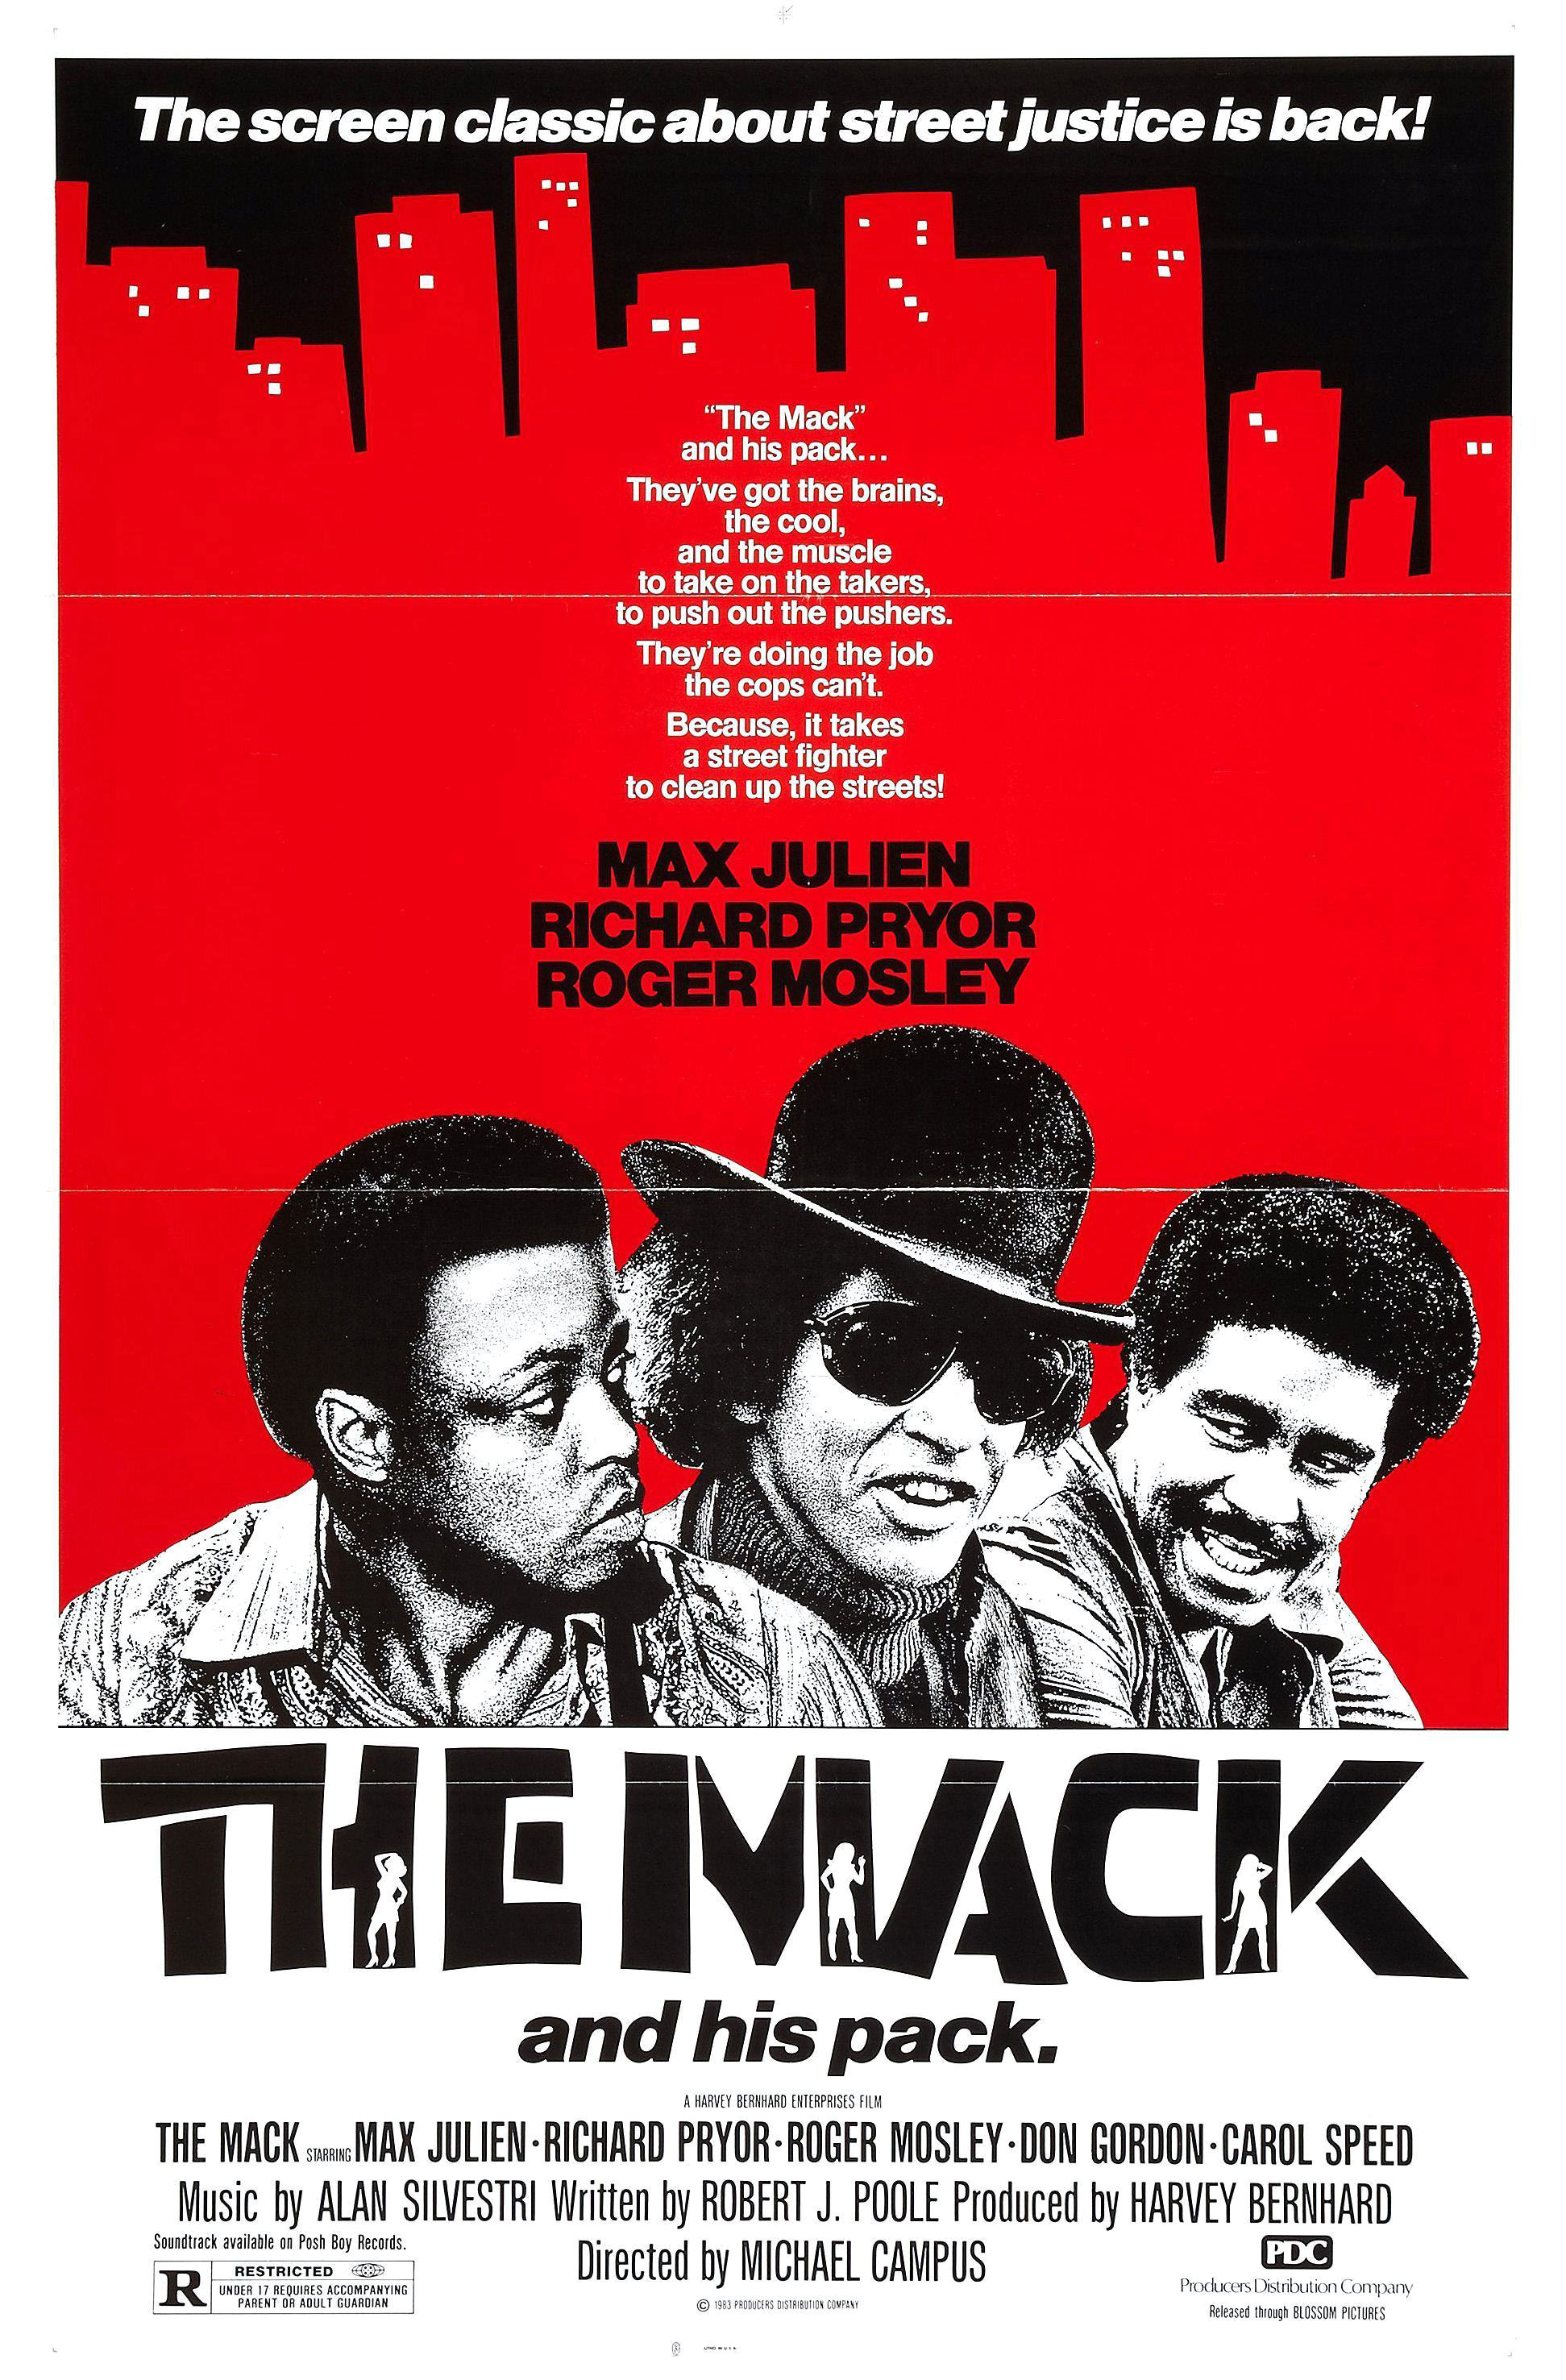 a comparison of blaxploitation movies in dolemite and the mack Film the mack is a 1973 blaxploitation film starring max julien and richard pryor although the movie was produced during the era of such blaxploitation movies as dolemite, its producers do not label it a true blaxploitation picture.